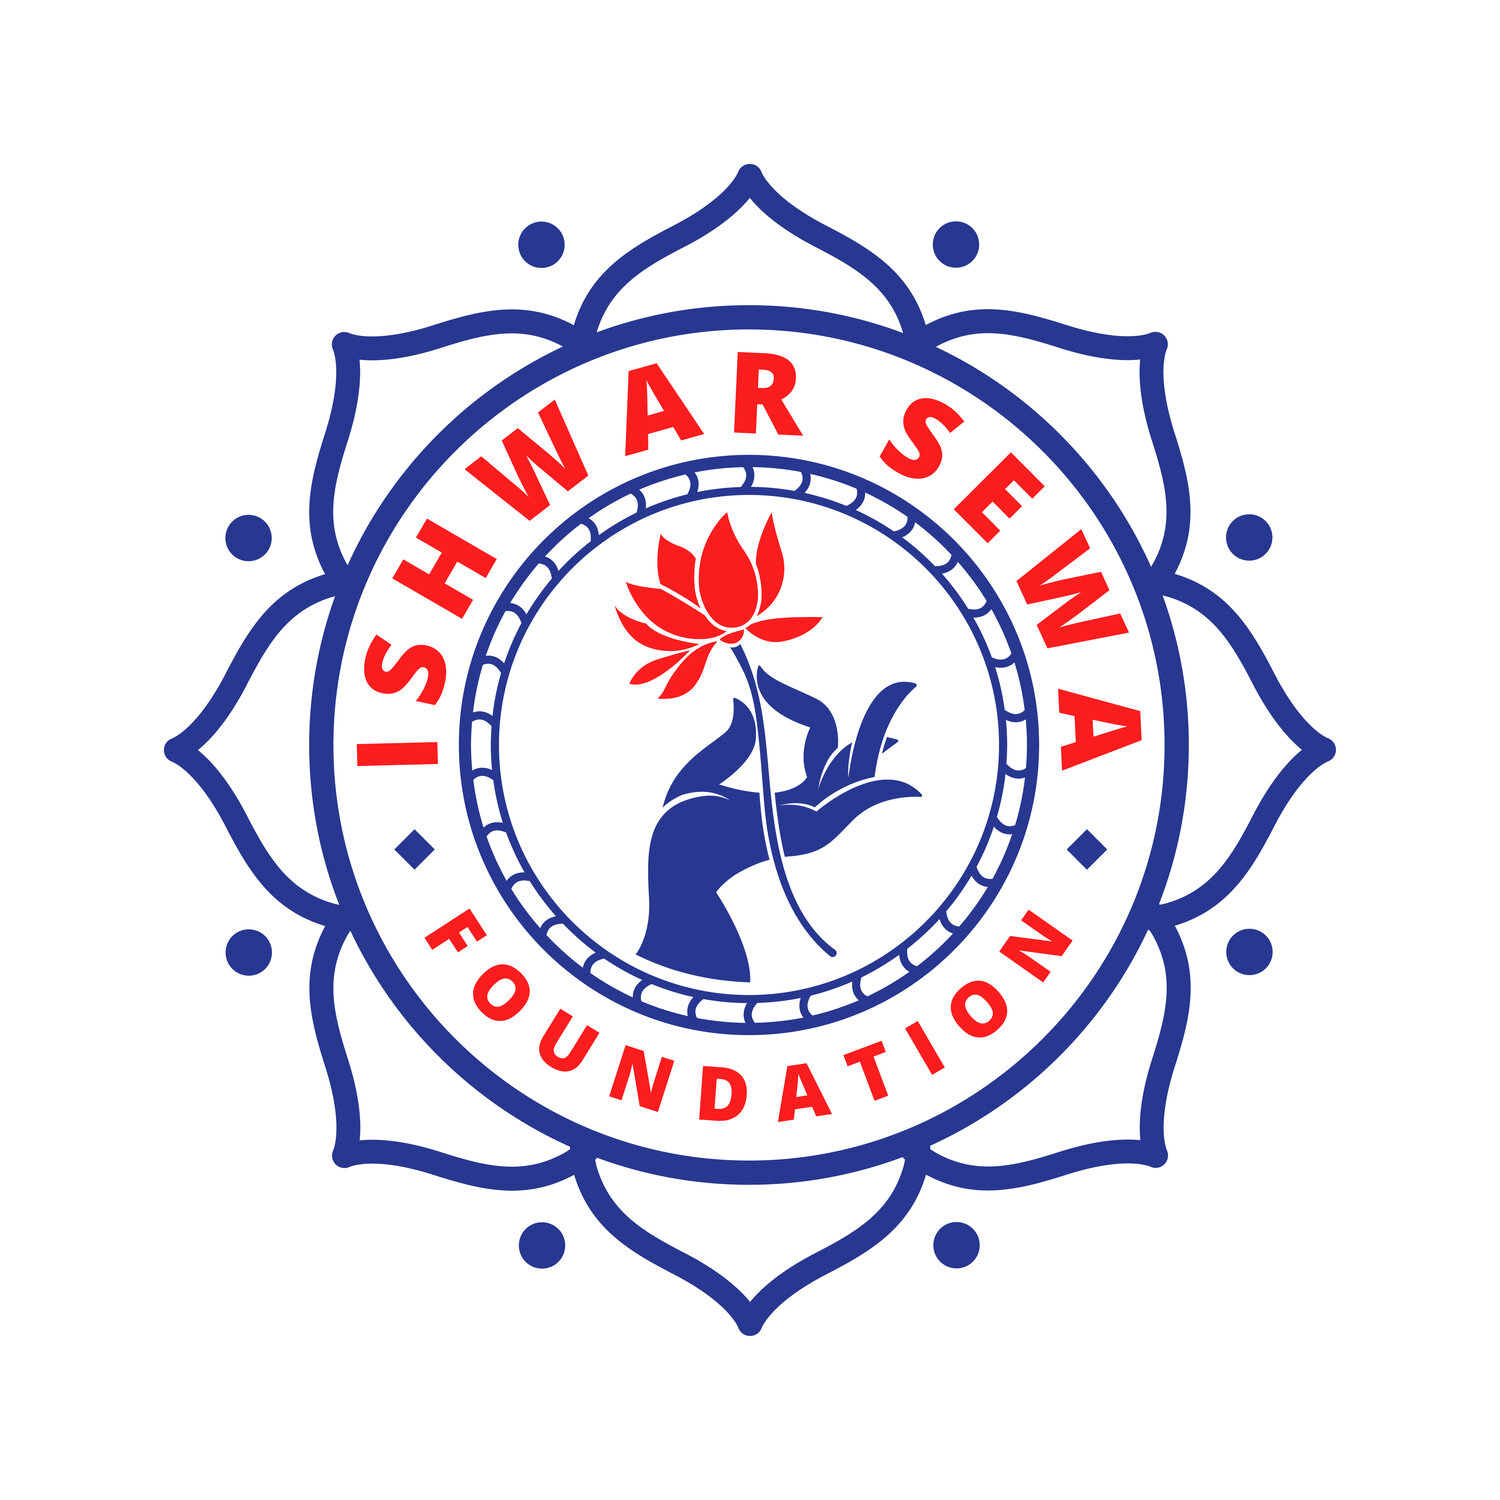 Ishwar Sewa Foundation